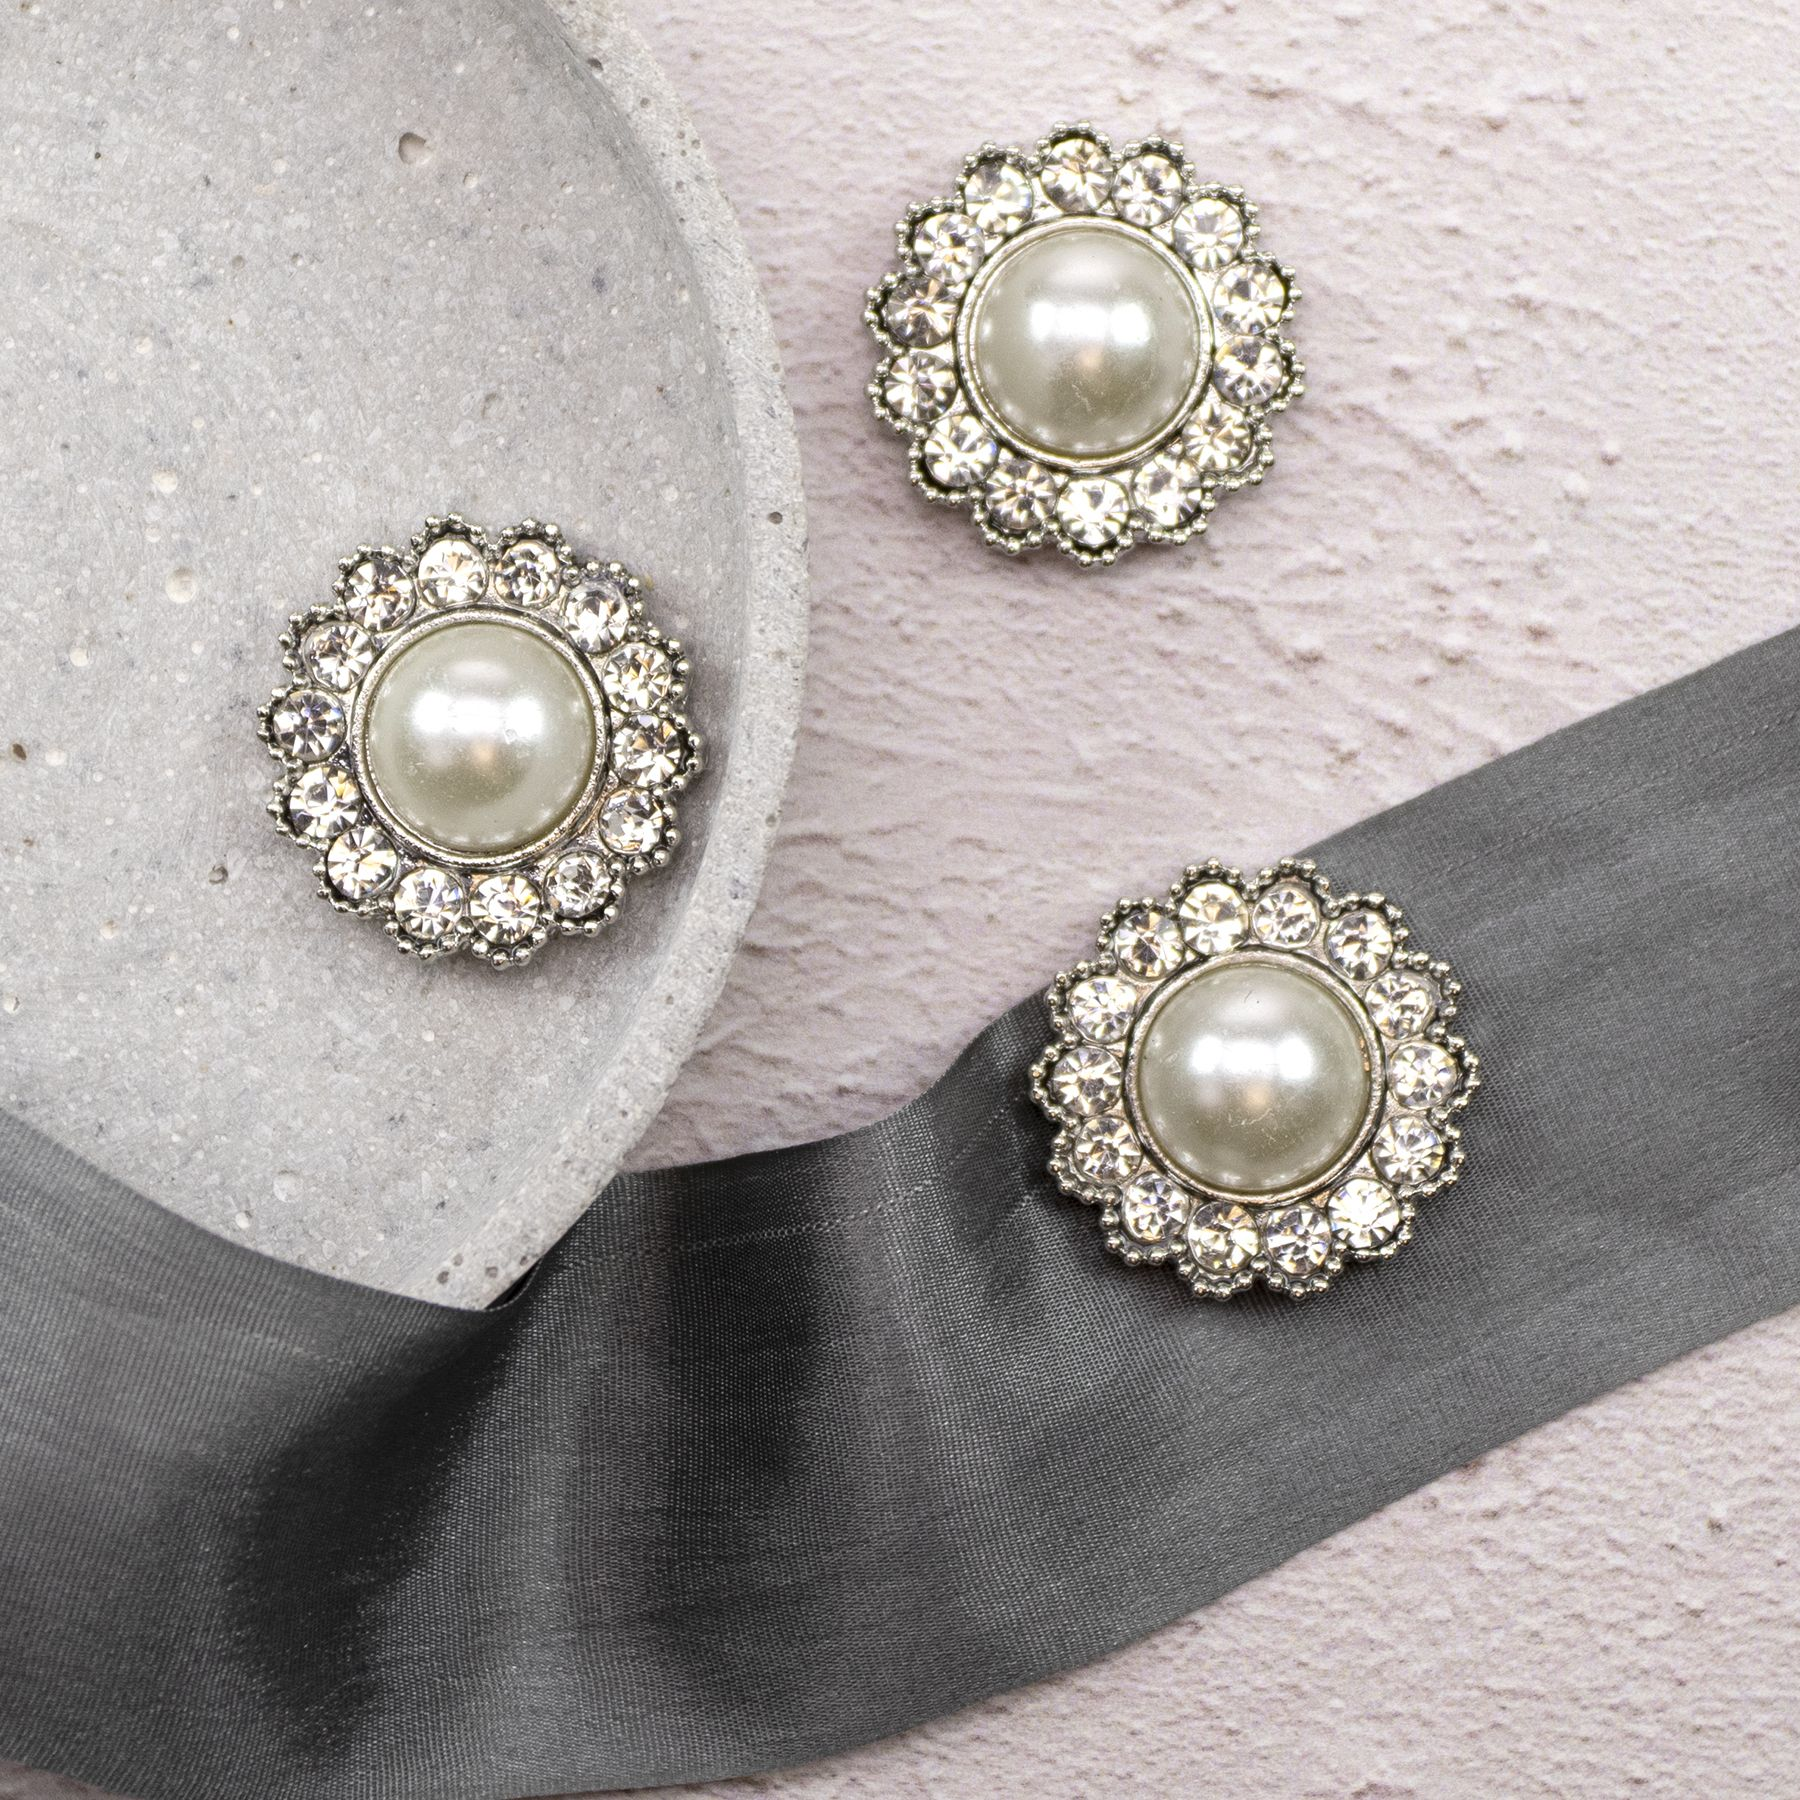 Pearl and Diamante Embellishments category image